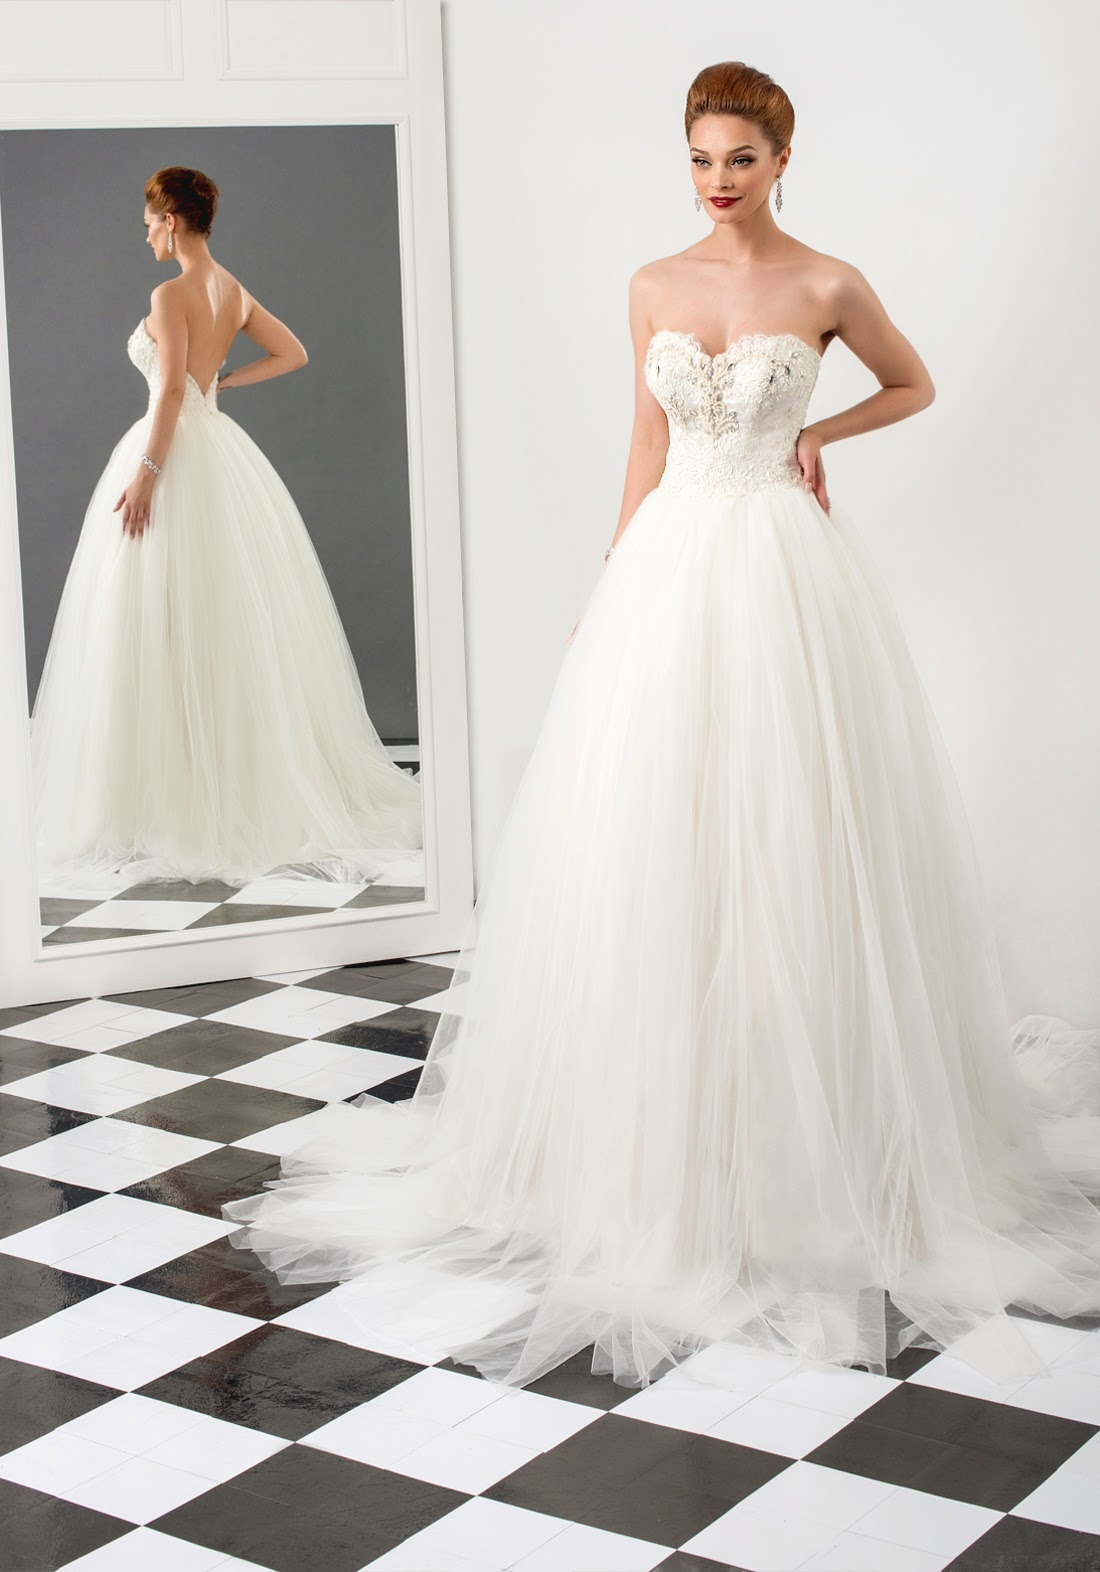 Sharon Wedding Dress Crafted In Taffeta Fine Tulle And Lace Mermaid With Open Back Sweetheart Cleavage Built Corset